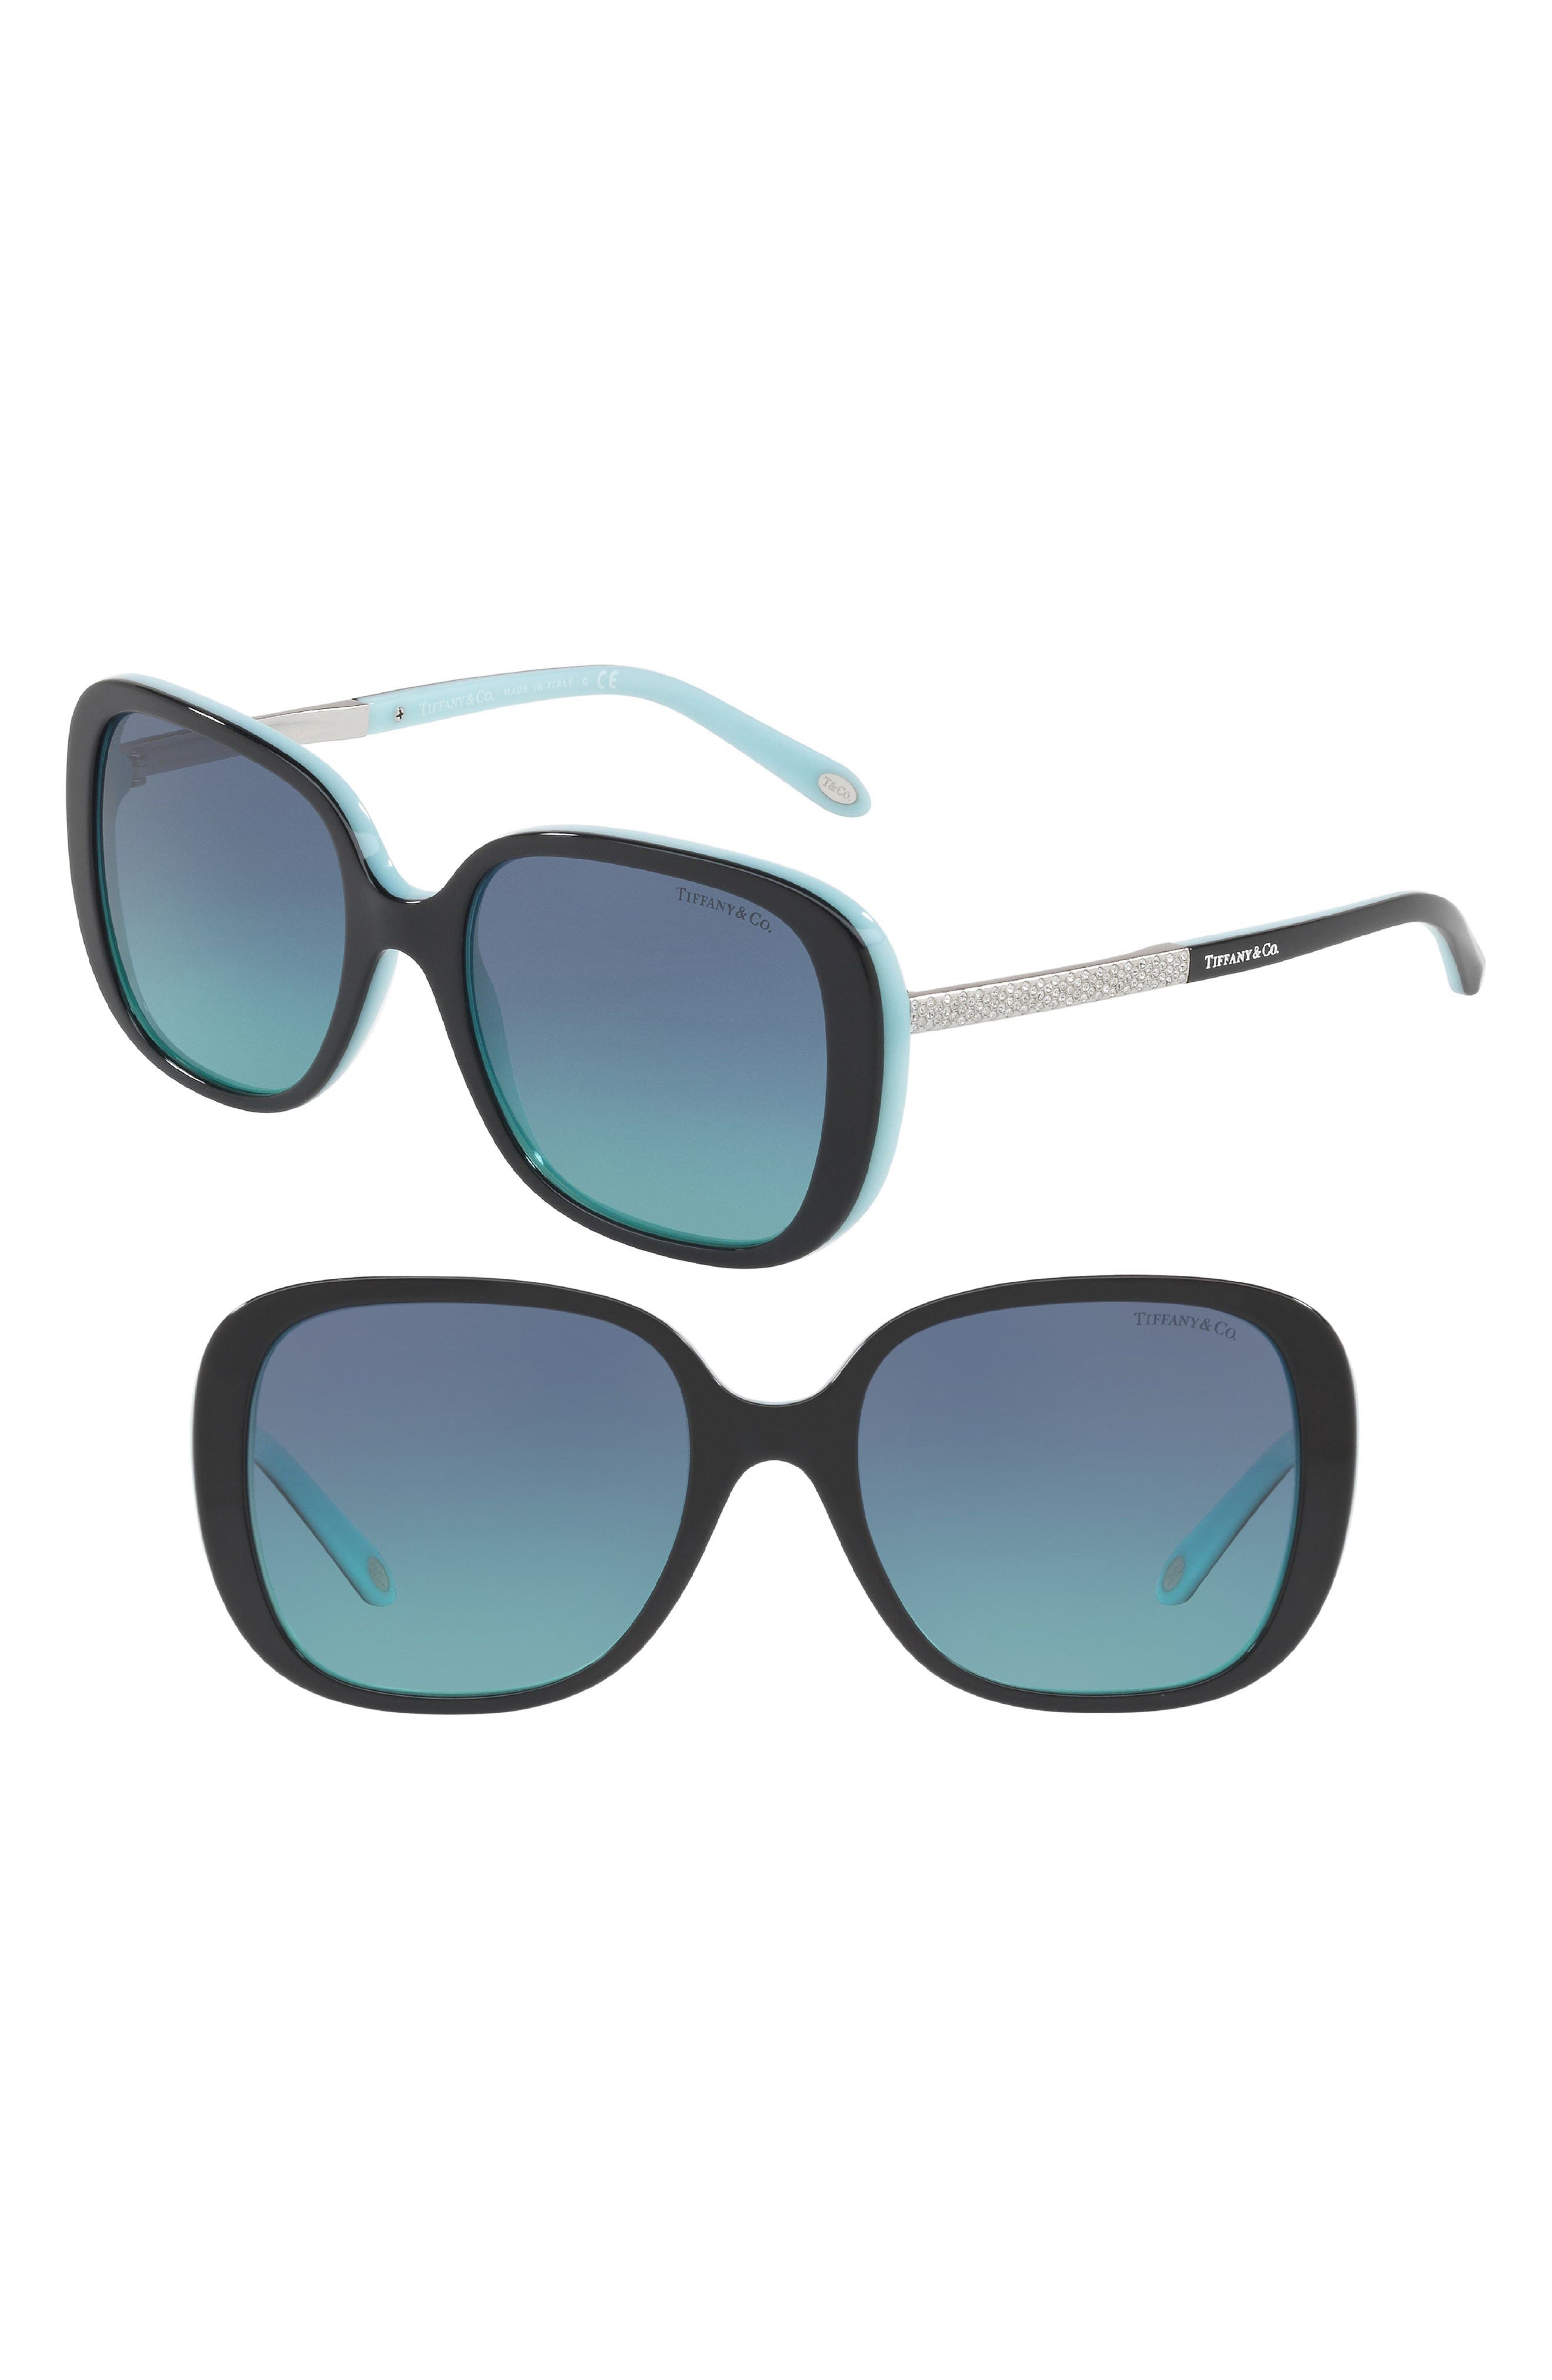 54mm Gradient Sunglasses,                             Main thumbnail 1, color,                             BLACK/ BLUE